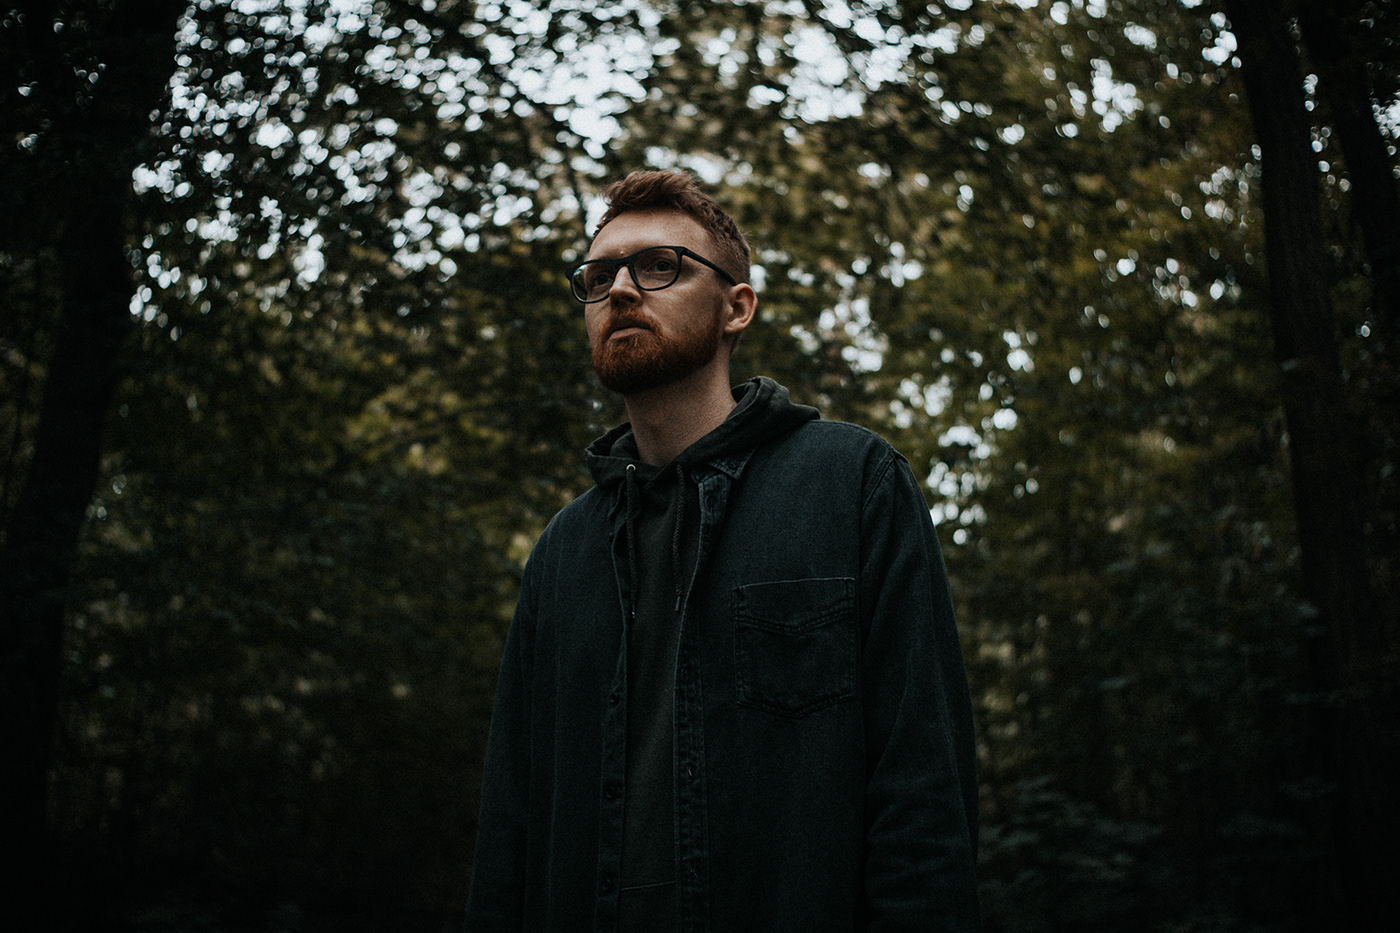 Photographie,sonyalpha,woods,forrest,green,Moody,portrait,music,rap,hiphop